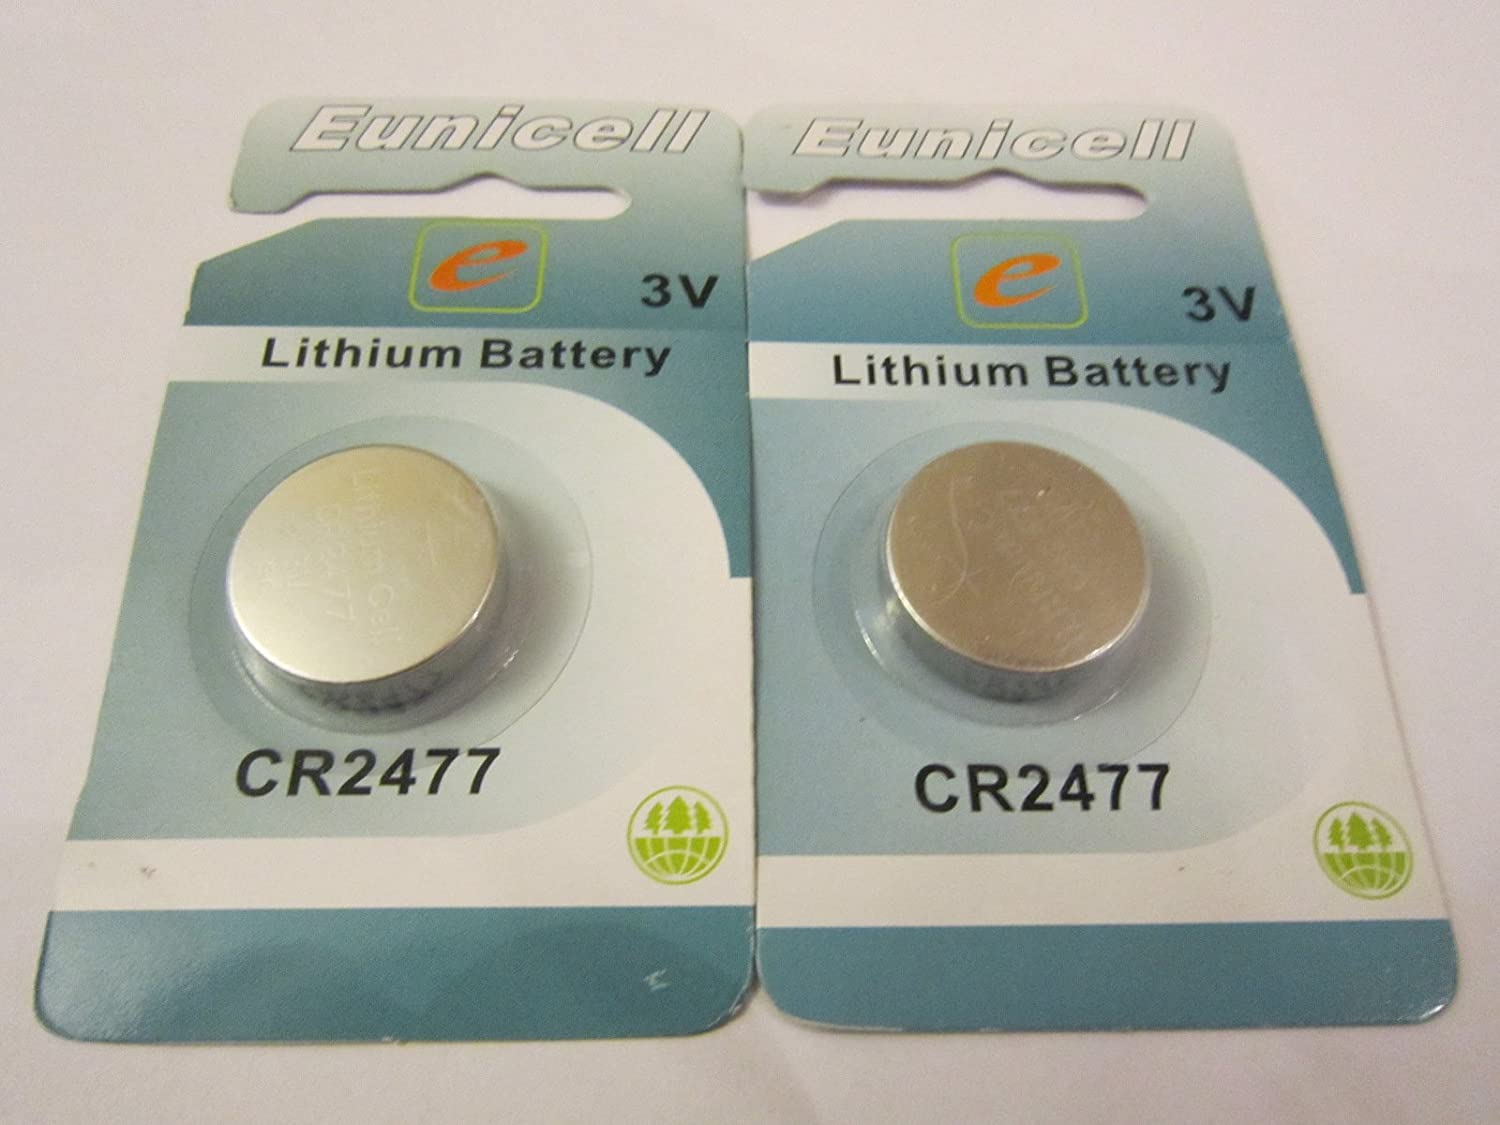 2x CR2477/BR2477/DL2477/ECR2477/KCR2477 3V Eunicell Lithium Battery Batteries CR2477 / BR2477 / DL2477